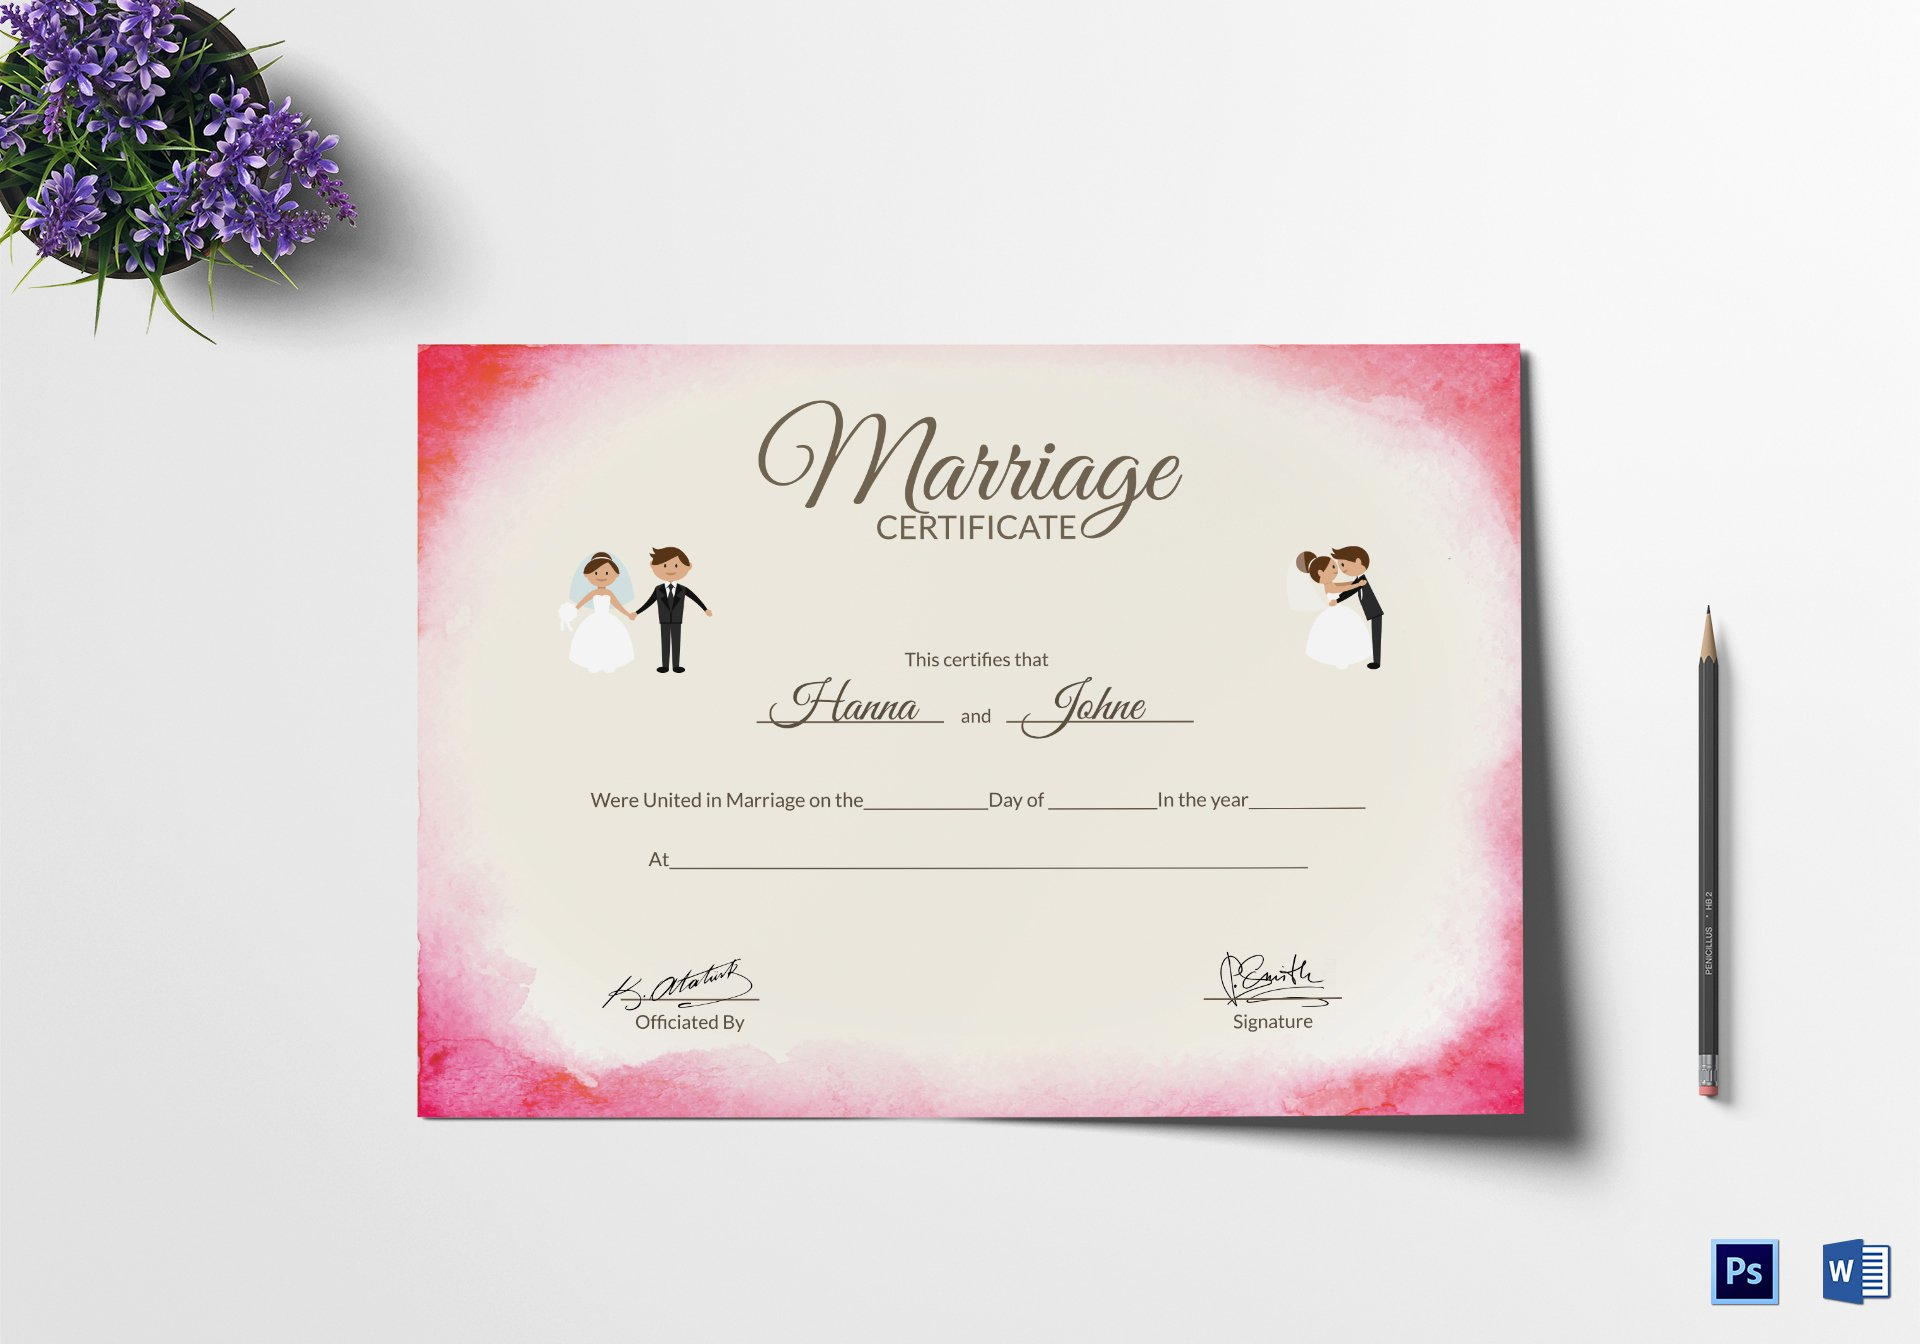 Elegant Marriage Certificate Design Template In Psd Word